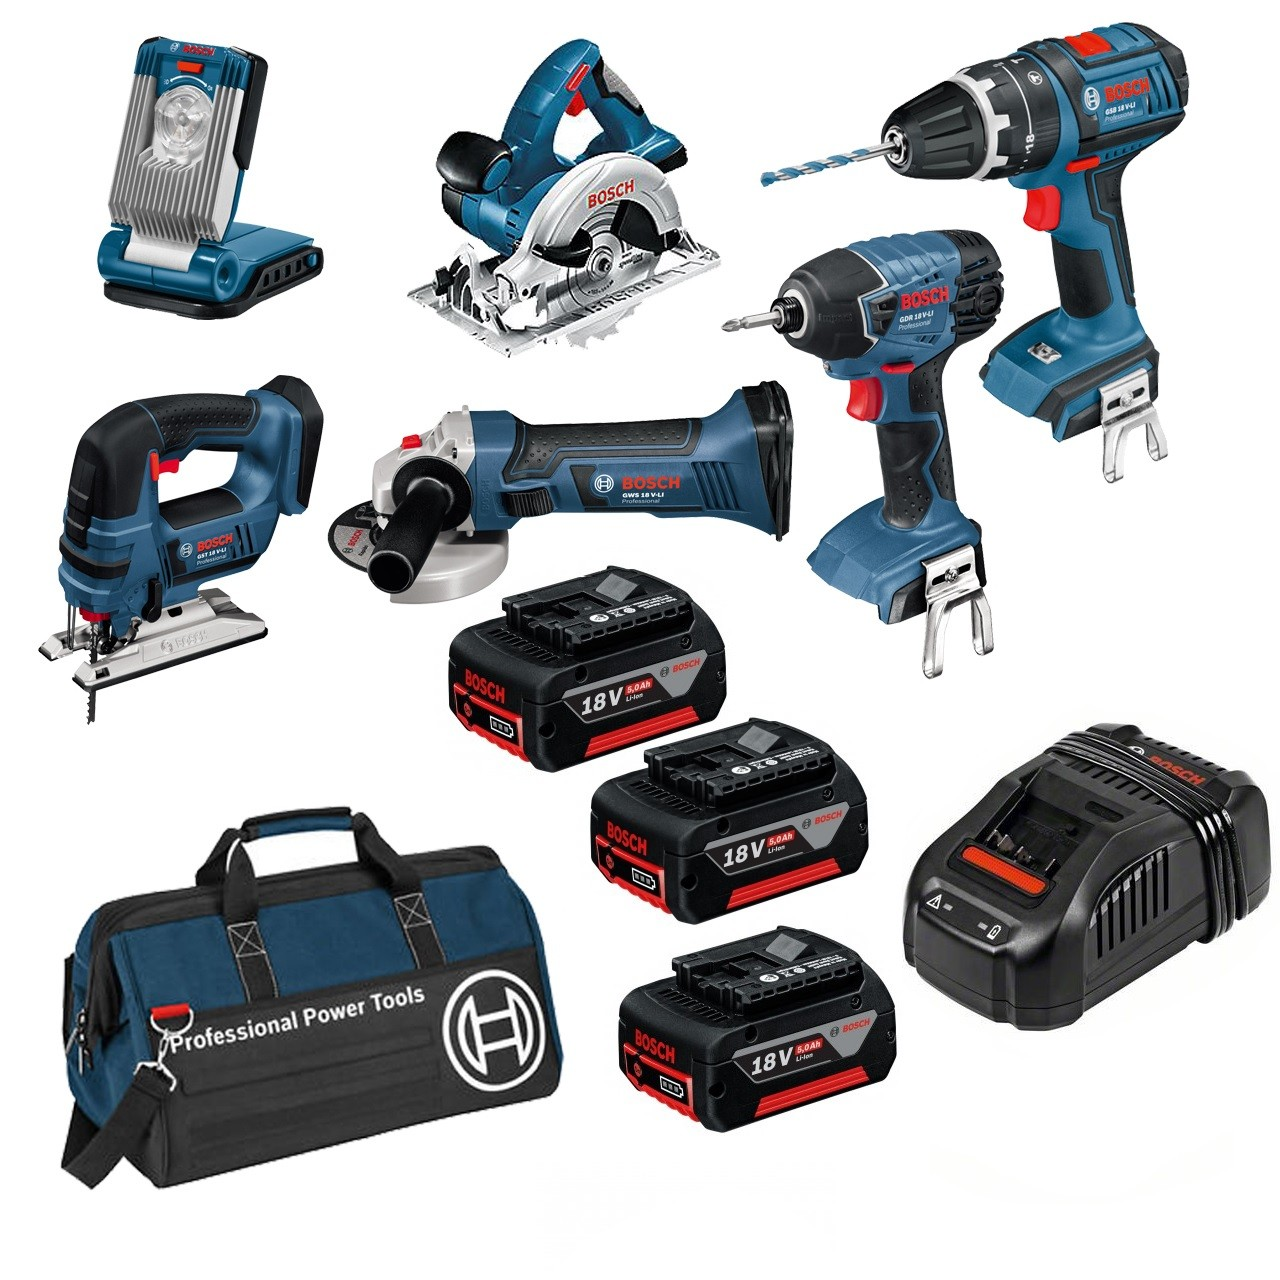 Bosch BAG+6DS 18v 6 Piece Cordless Tool Kit with 3x 5.0Ah in LBAG+  0615990H93  cfd60c40475a5